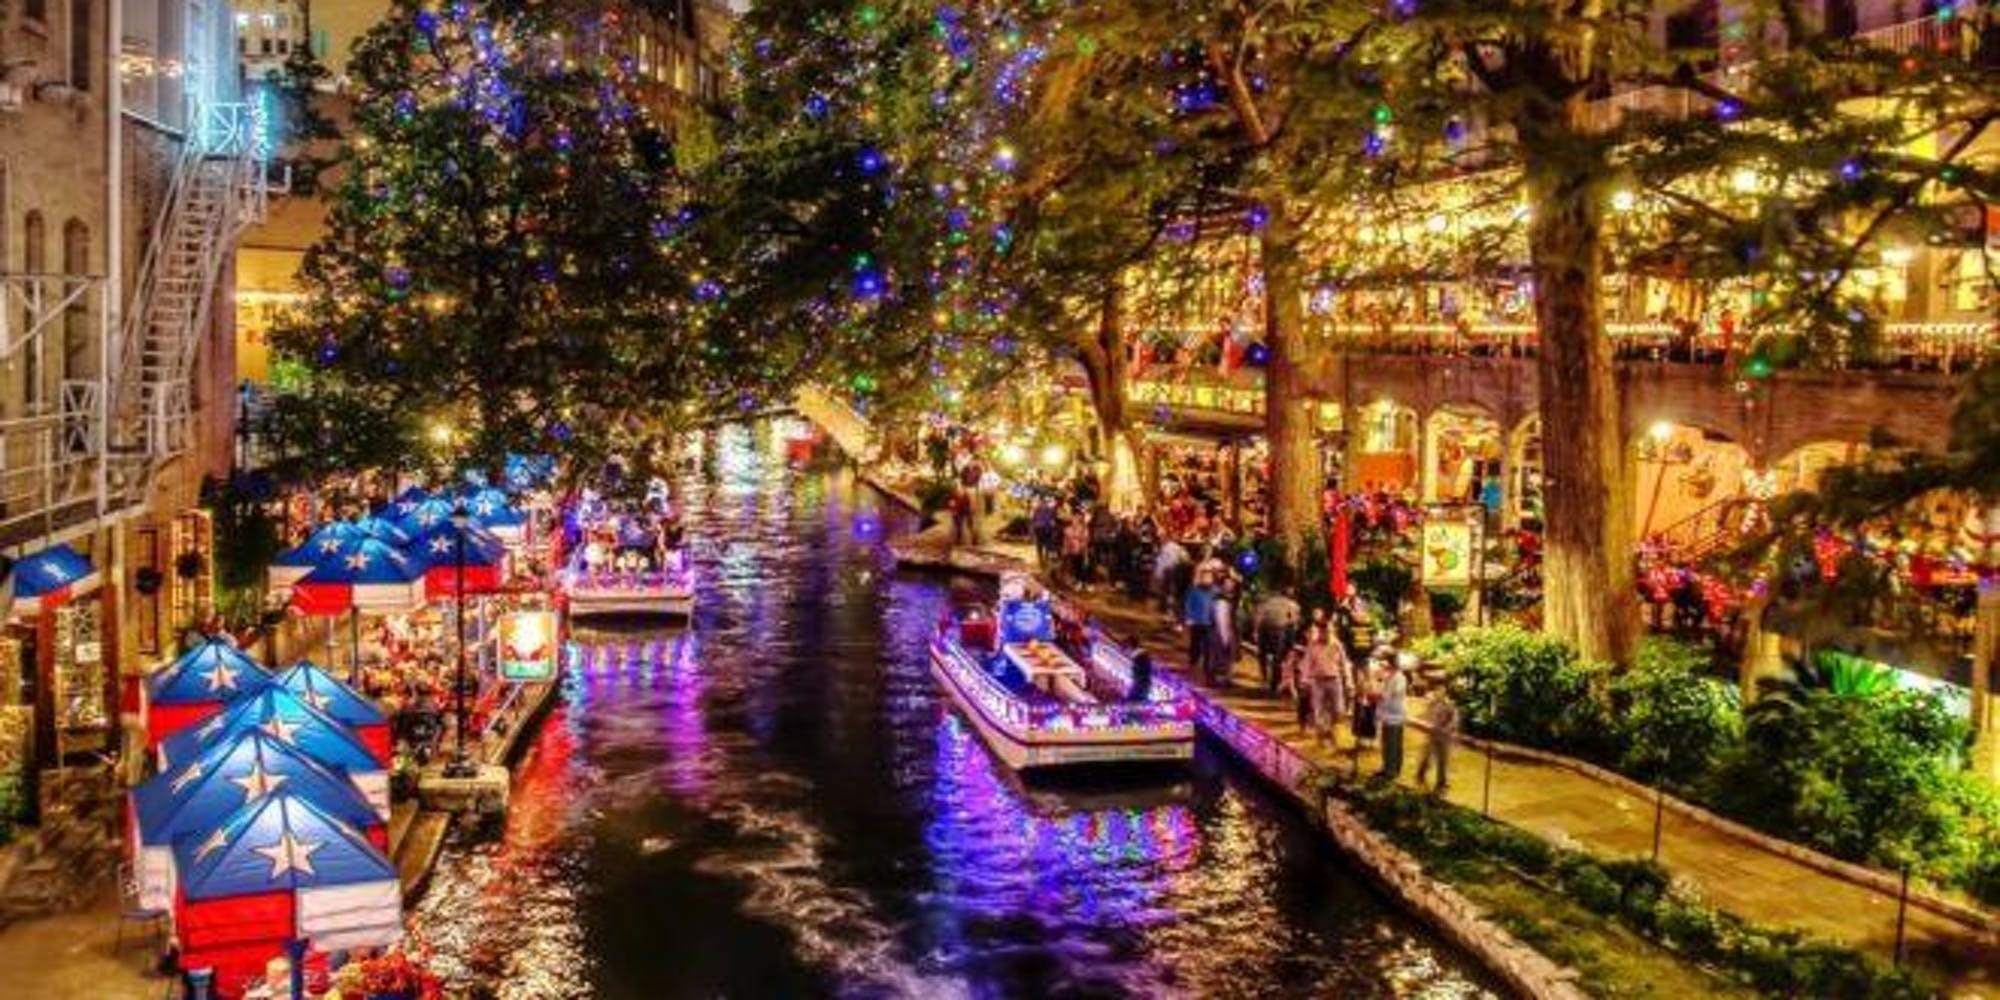 San Antonio All Christmas Music 2020 San Antonio's Ford Holiday River Parade officially canceled due to